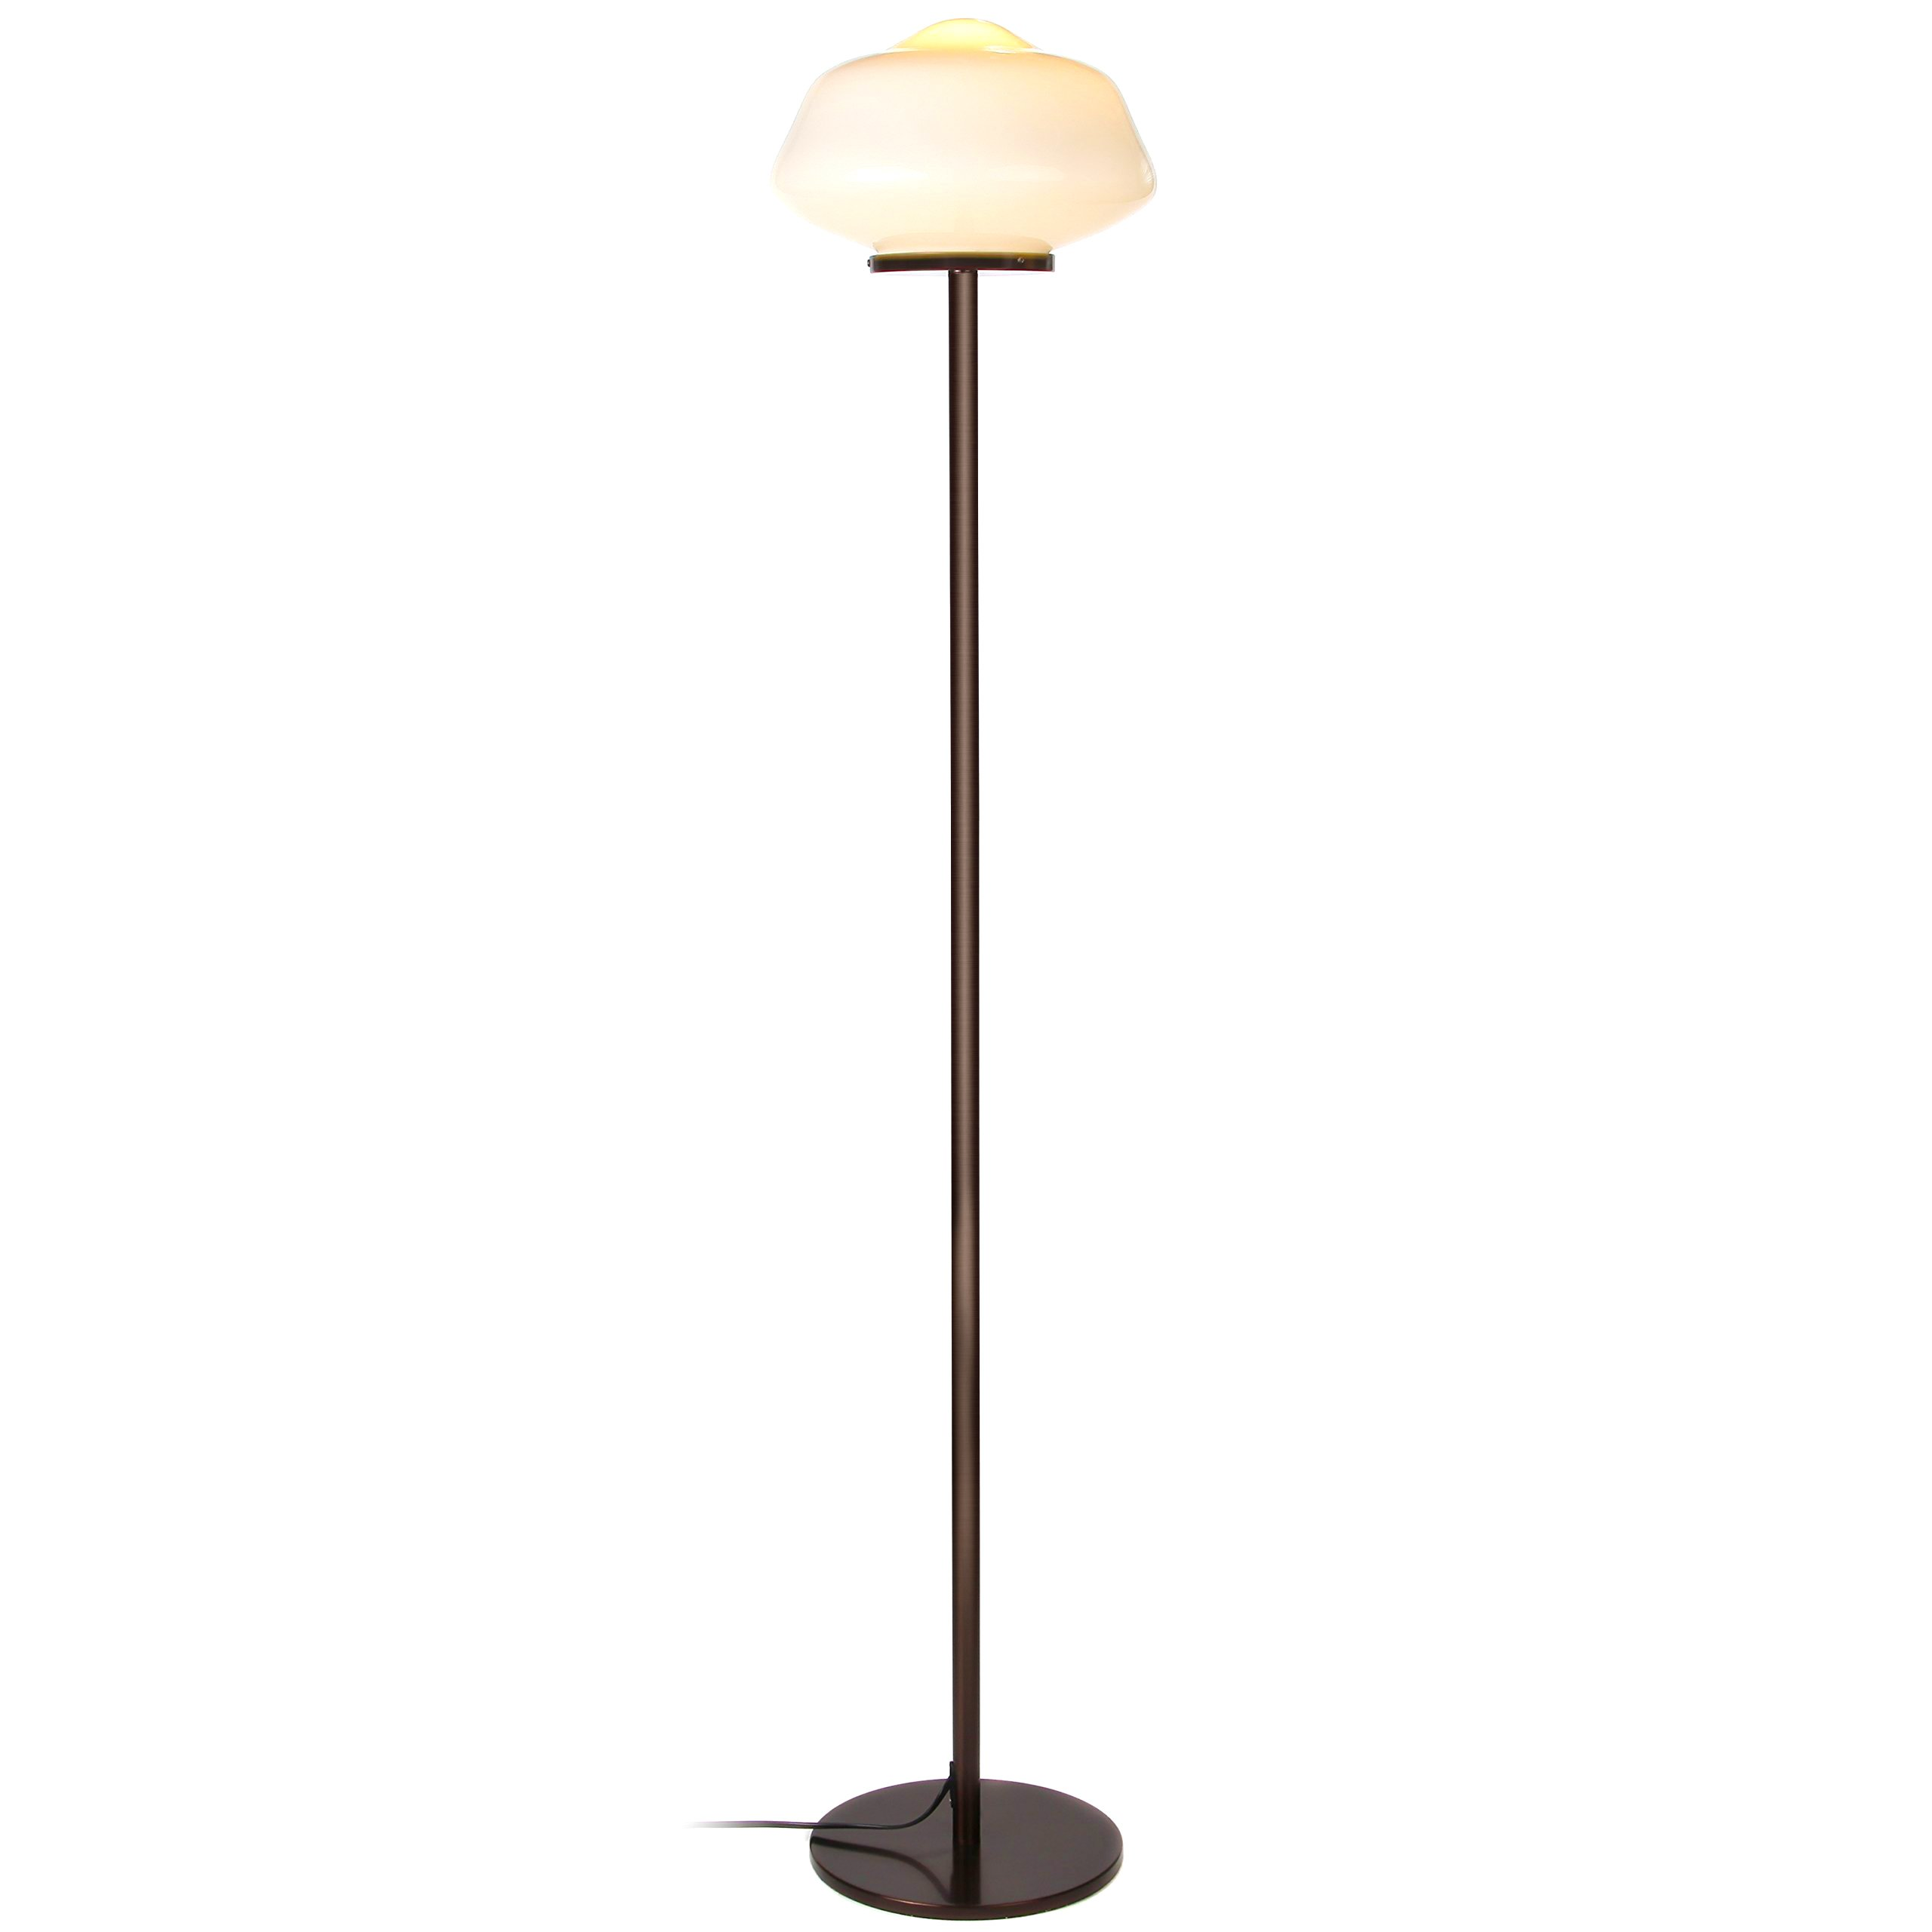 Brightech Aiden LED Floor Lamp– Contemporary Modern Frosted Glass Globe Lamp- Tall Pole Standing Uplight Lamp for Living Room, Den Office or Bedroom- Energy Efficient Bulb Included - Bronze